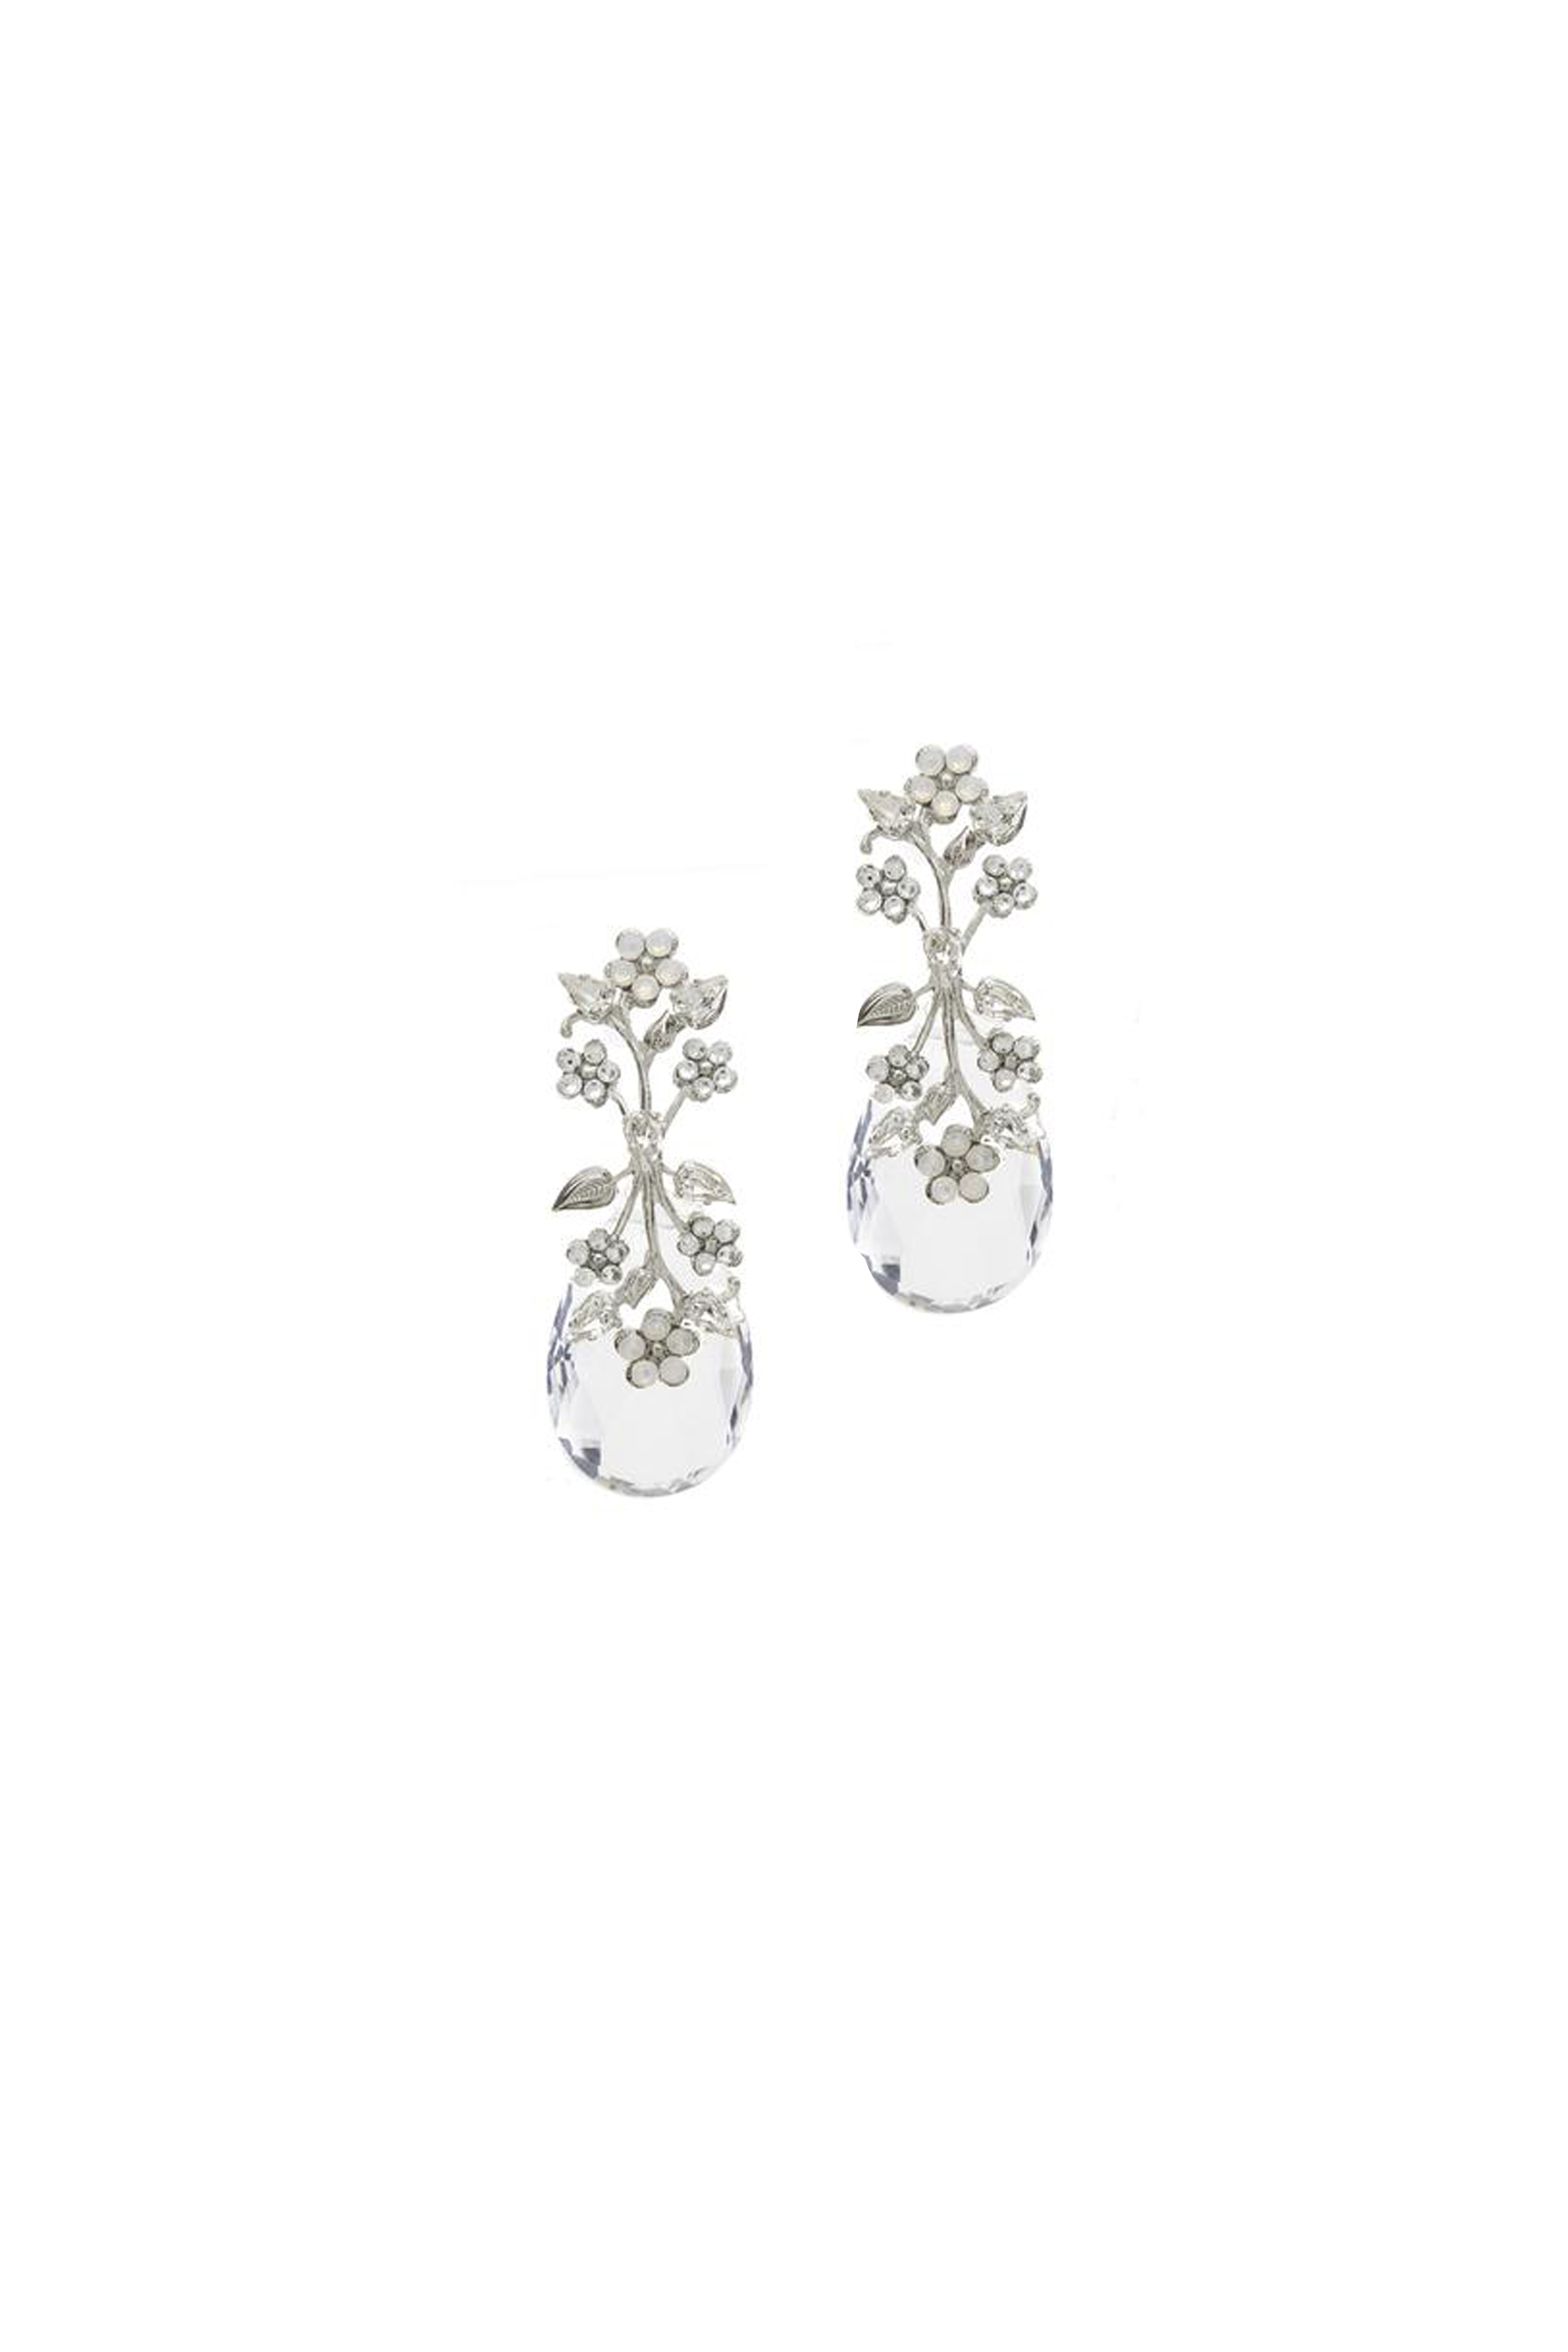 [RENTAL][Sakura Dew Drop Earrings]by ElizabethBower(参考価格¥24,840)